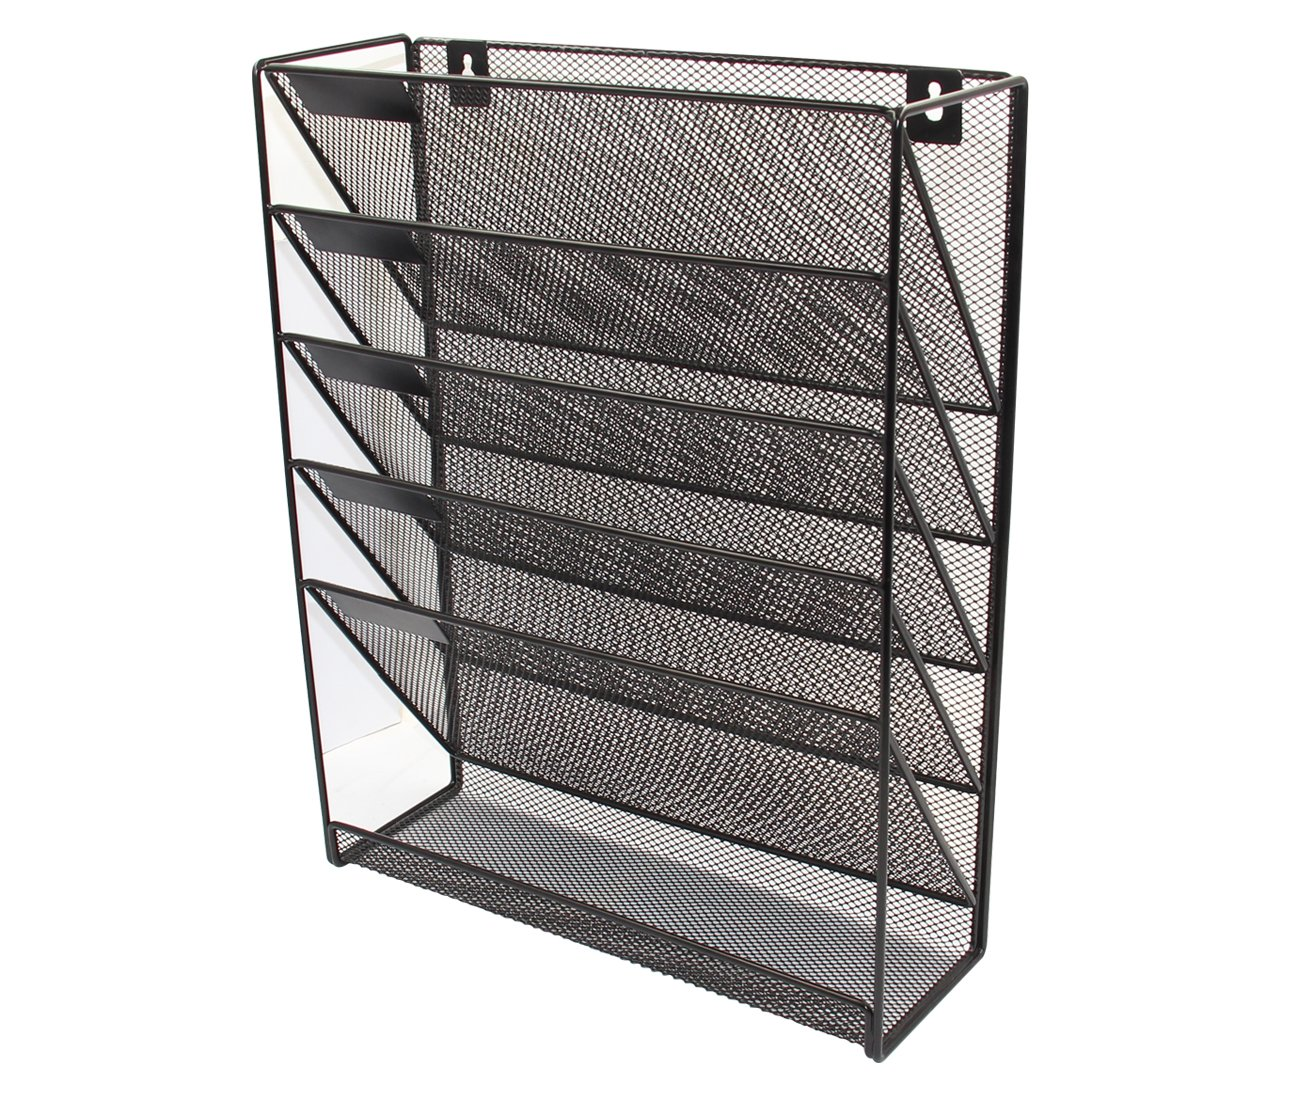 PAG Hanging Wall File Holder Mail Sorter Magazine Rack Office Supplies Metal Mesh Desk Organizer, 6 Tier, Black by PAG